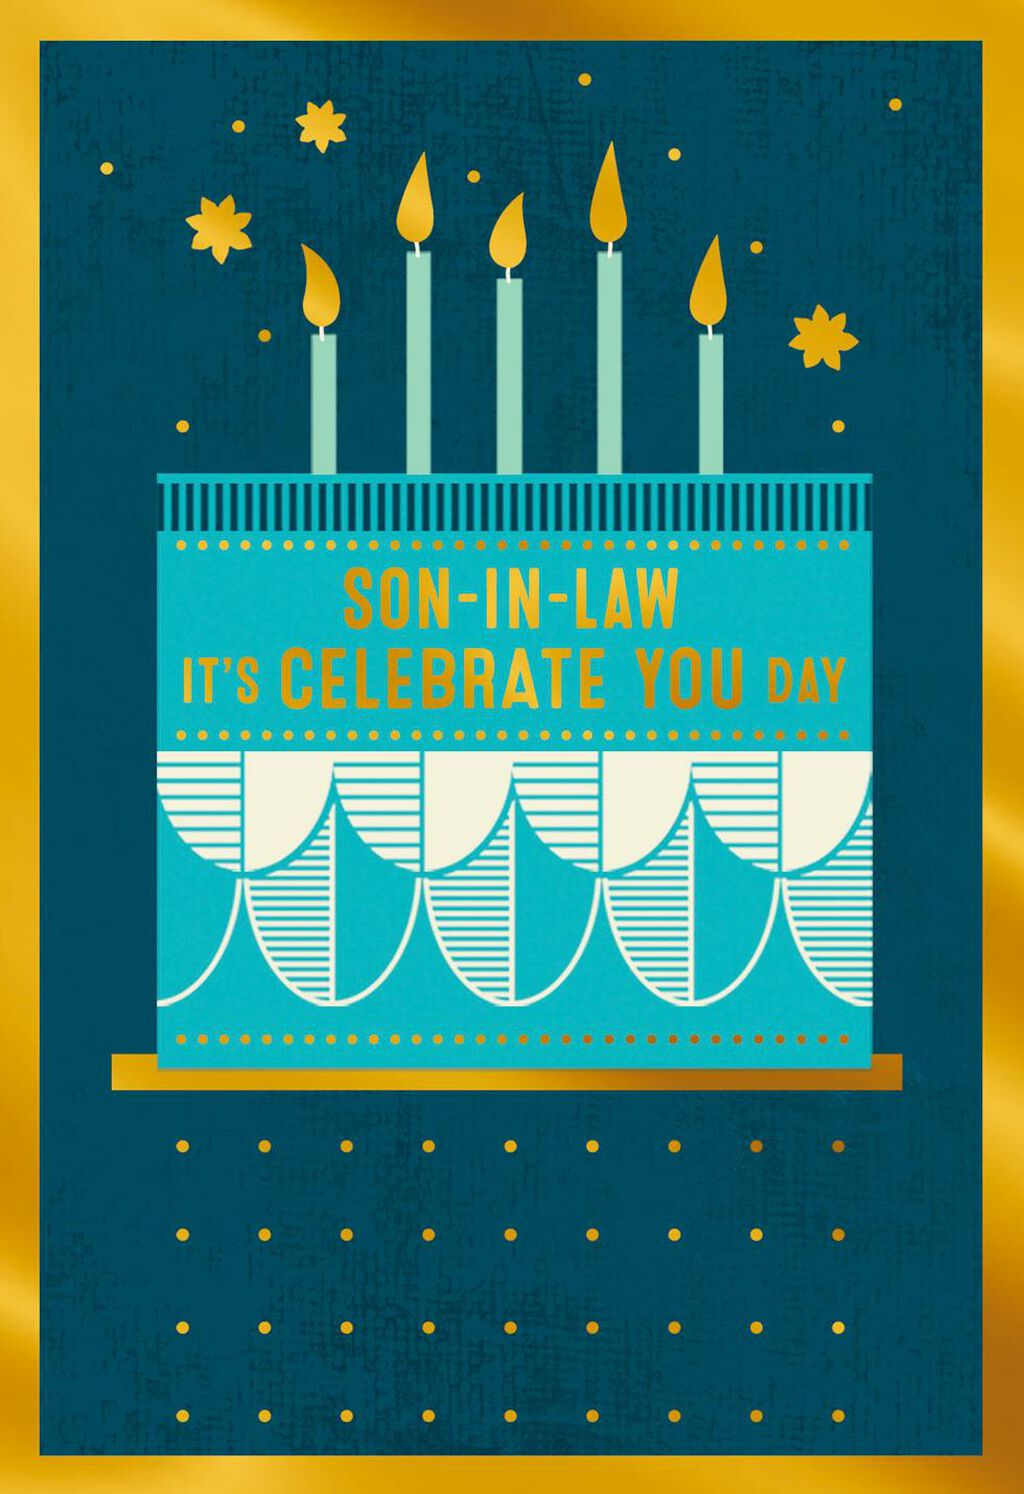 Celebrate You Day Birthday Card For Son In Law